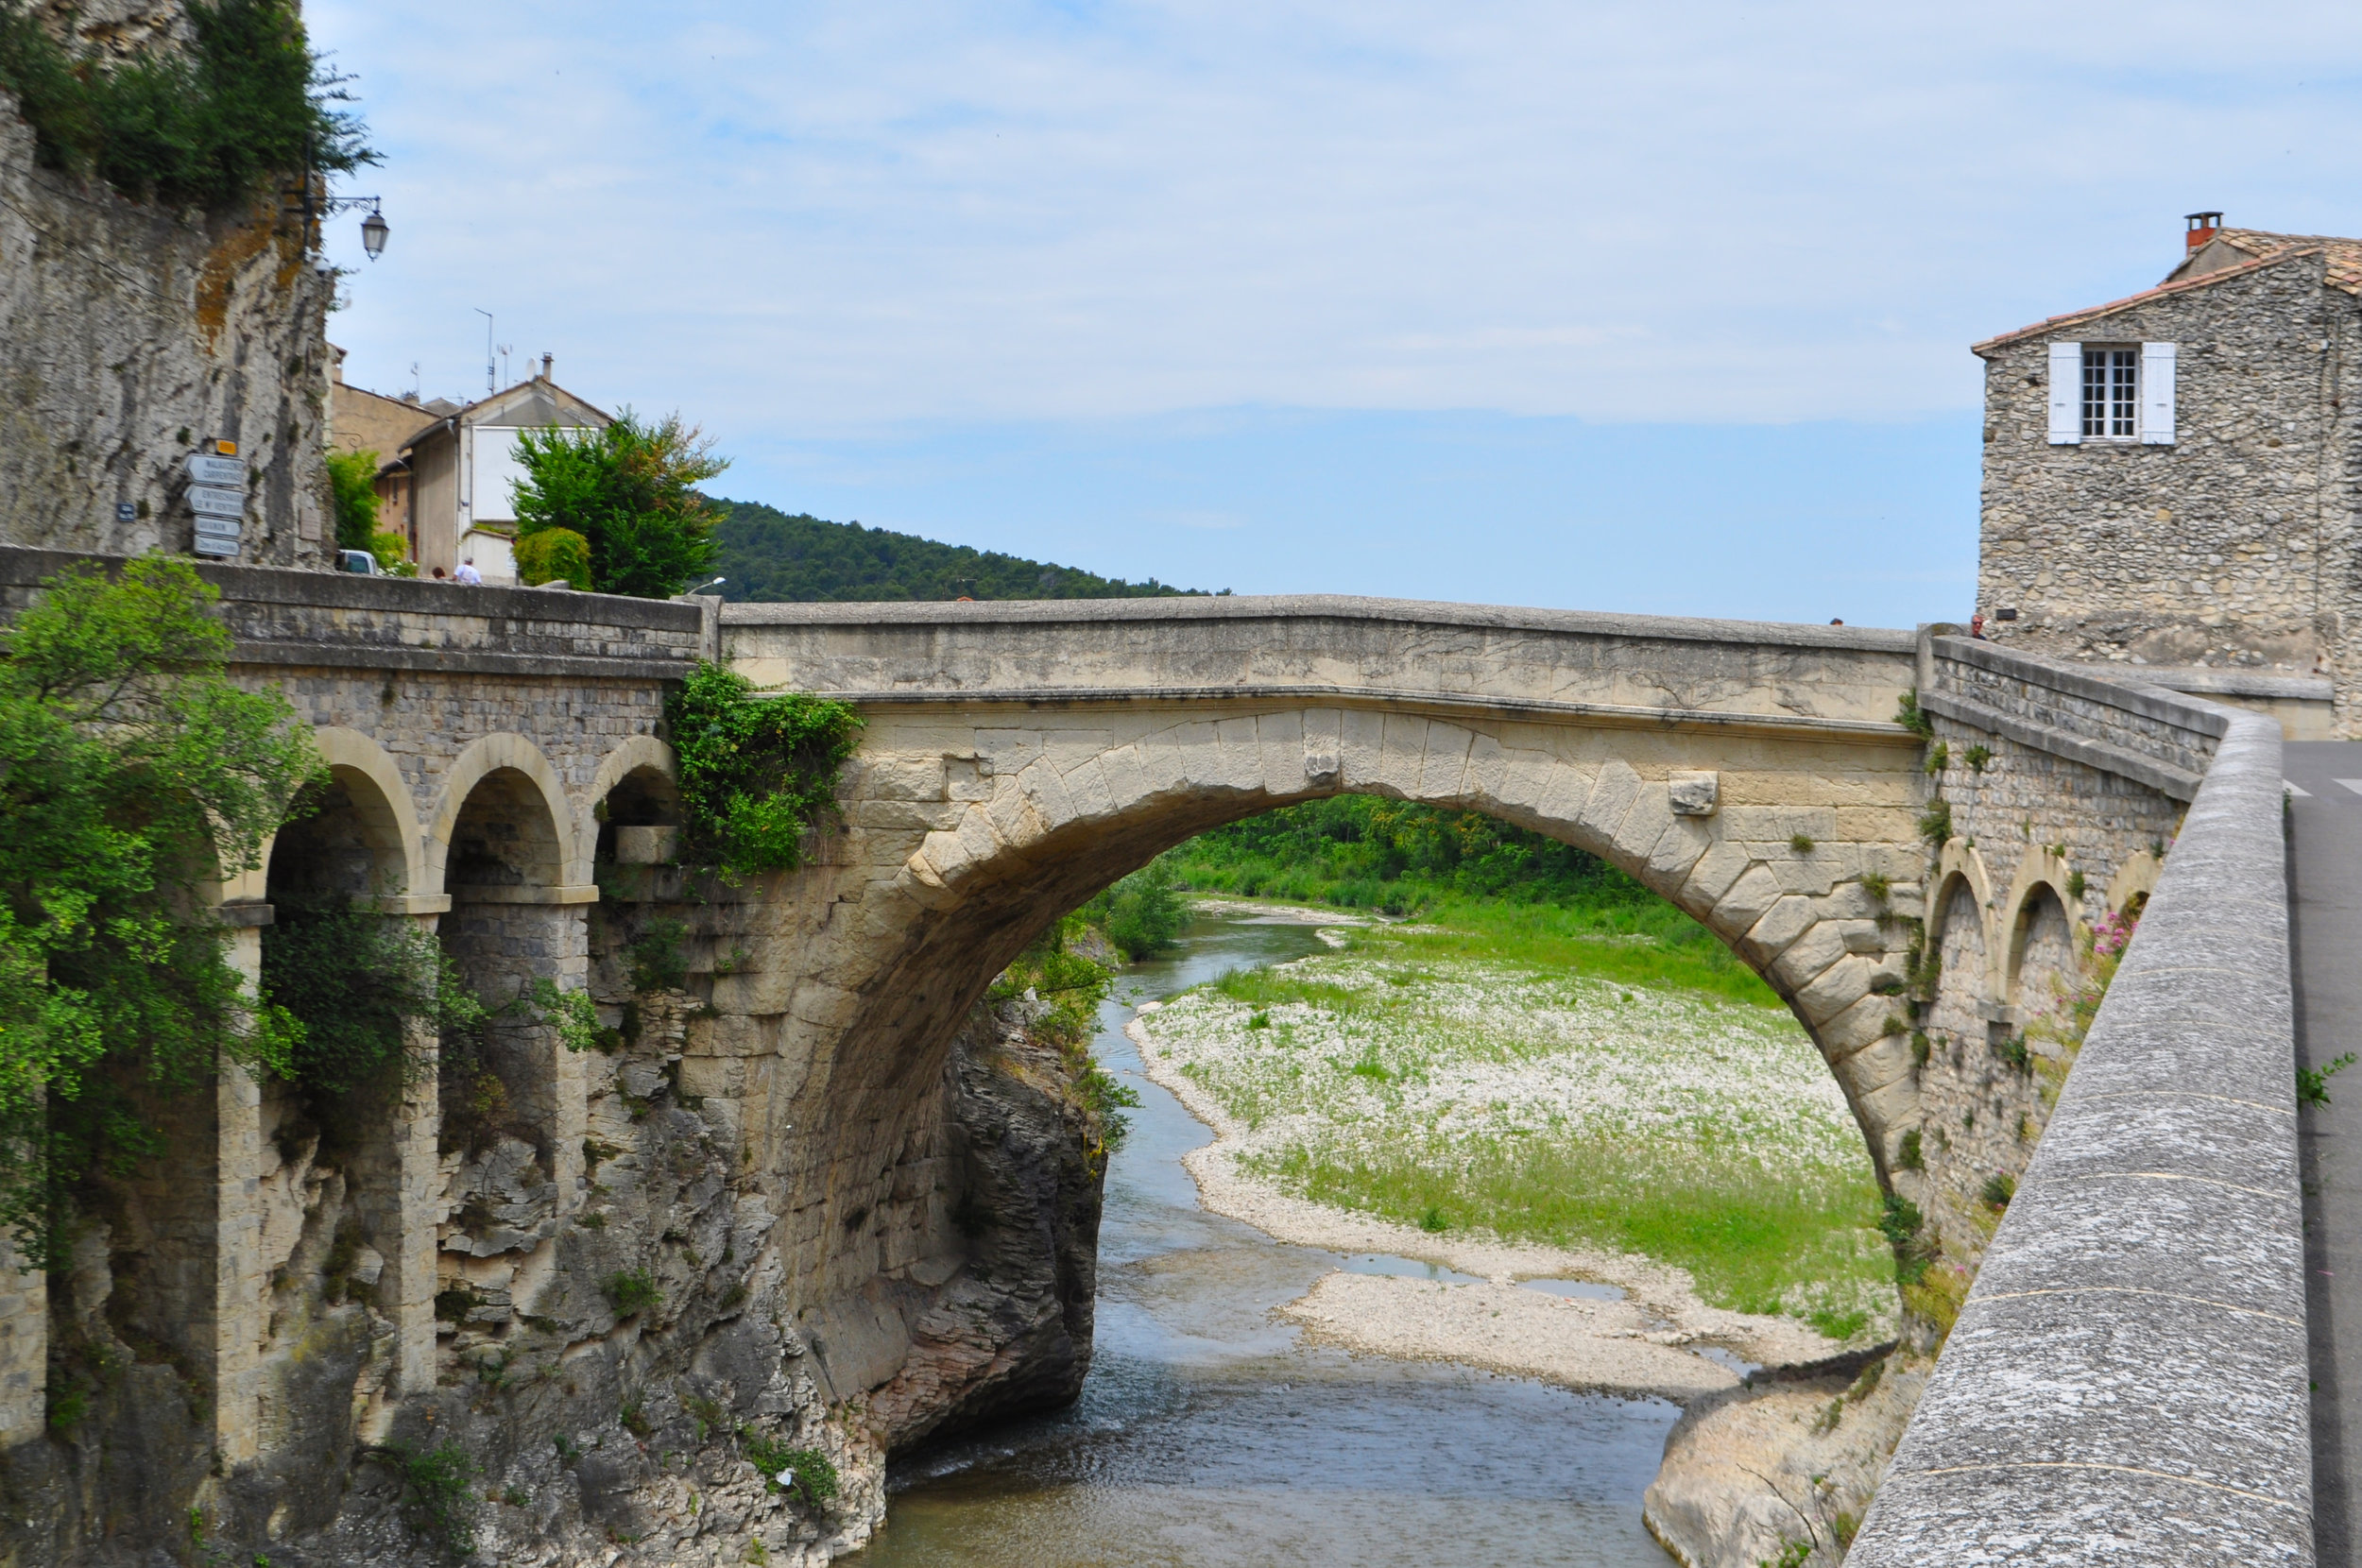 Ancient Roman Bridge in Vaison la Romaine